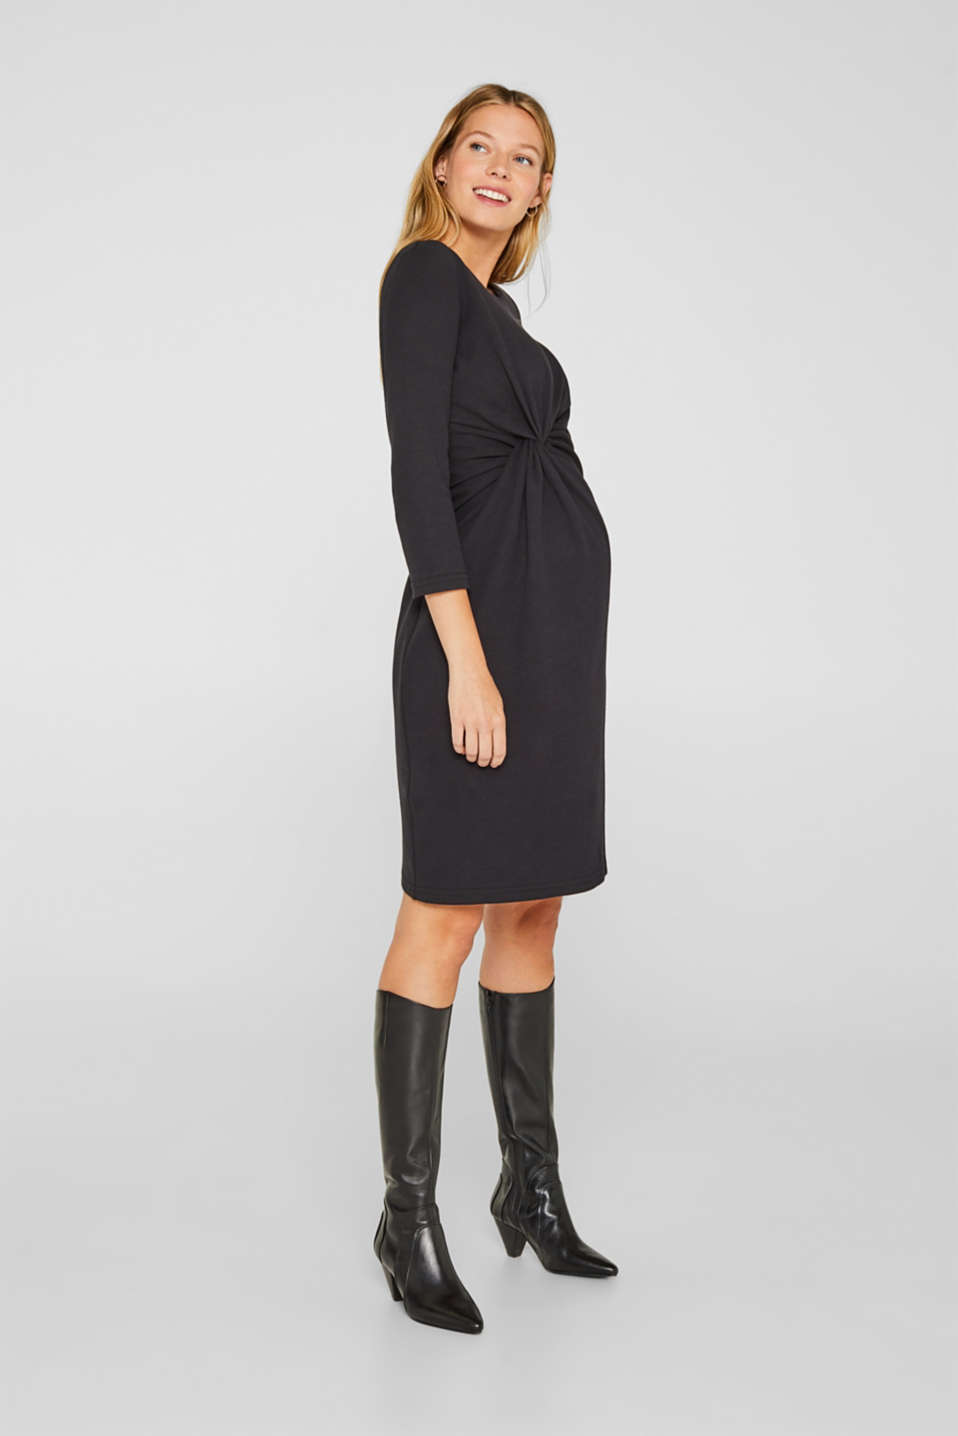 Draped stretch jersey dress, LCBLACK, detail image number 1